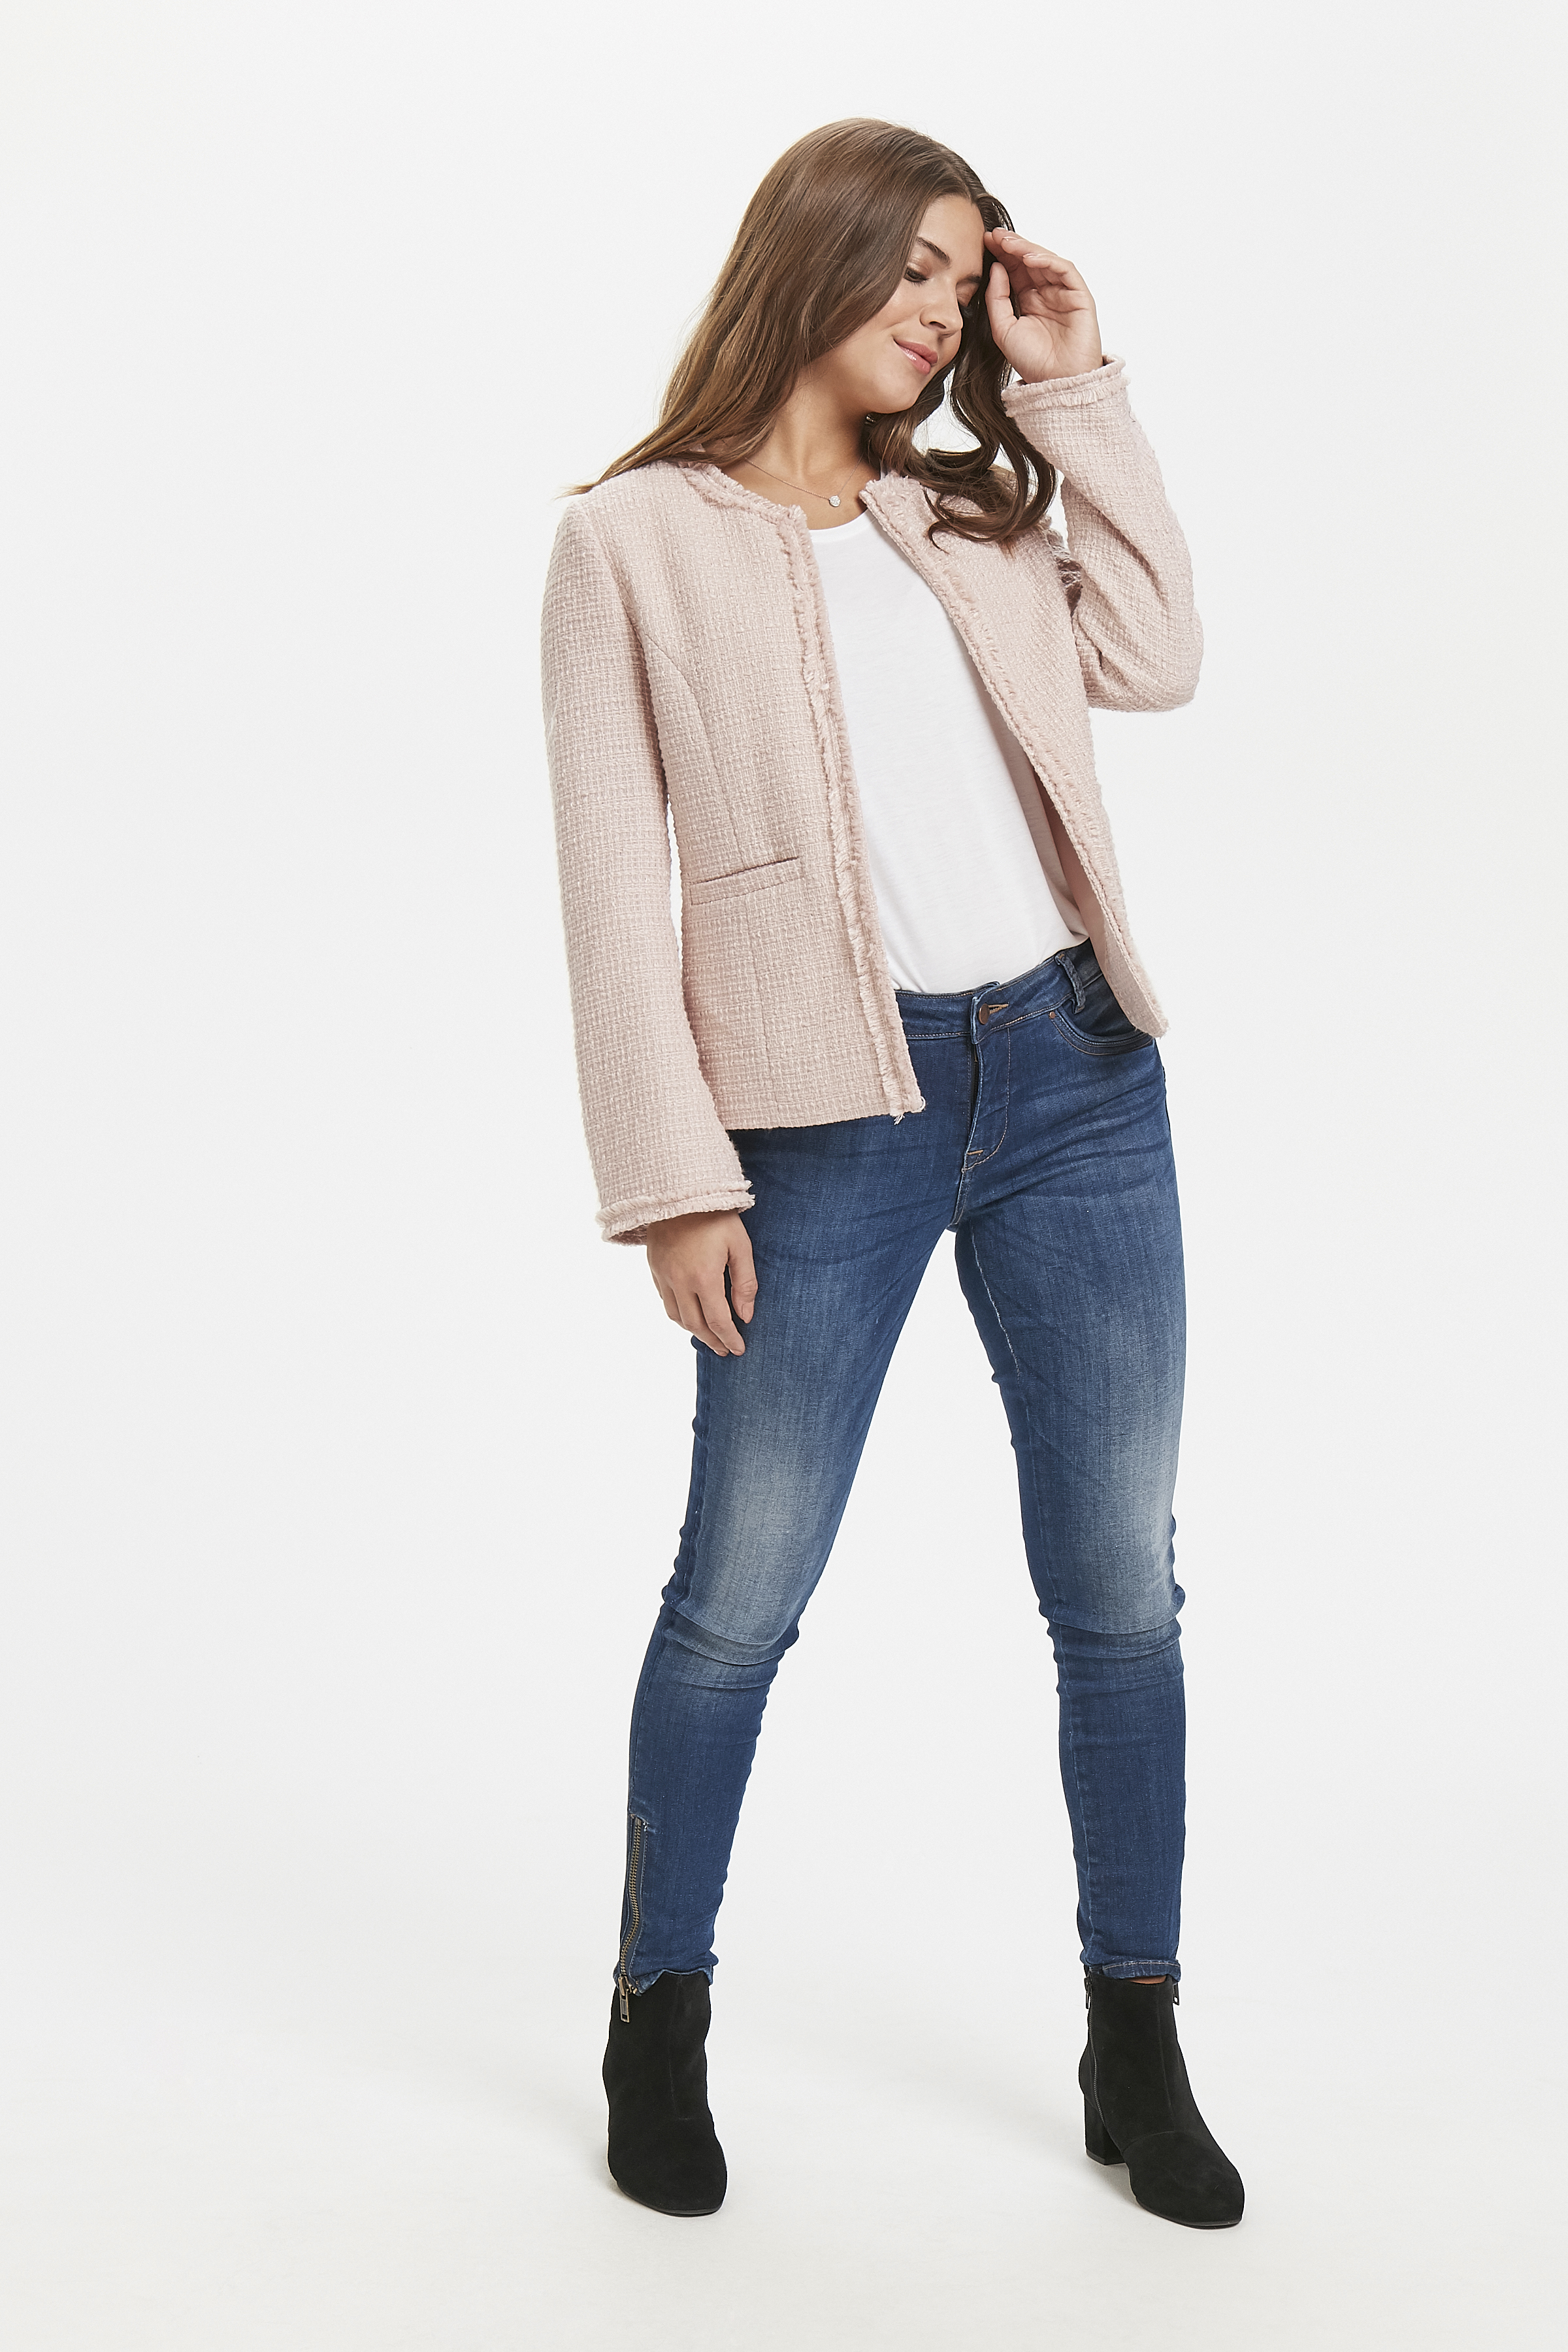 Rose Cloud Jacket from b.young – Buy Rose Cloud Jacket from size 34-46 here